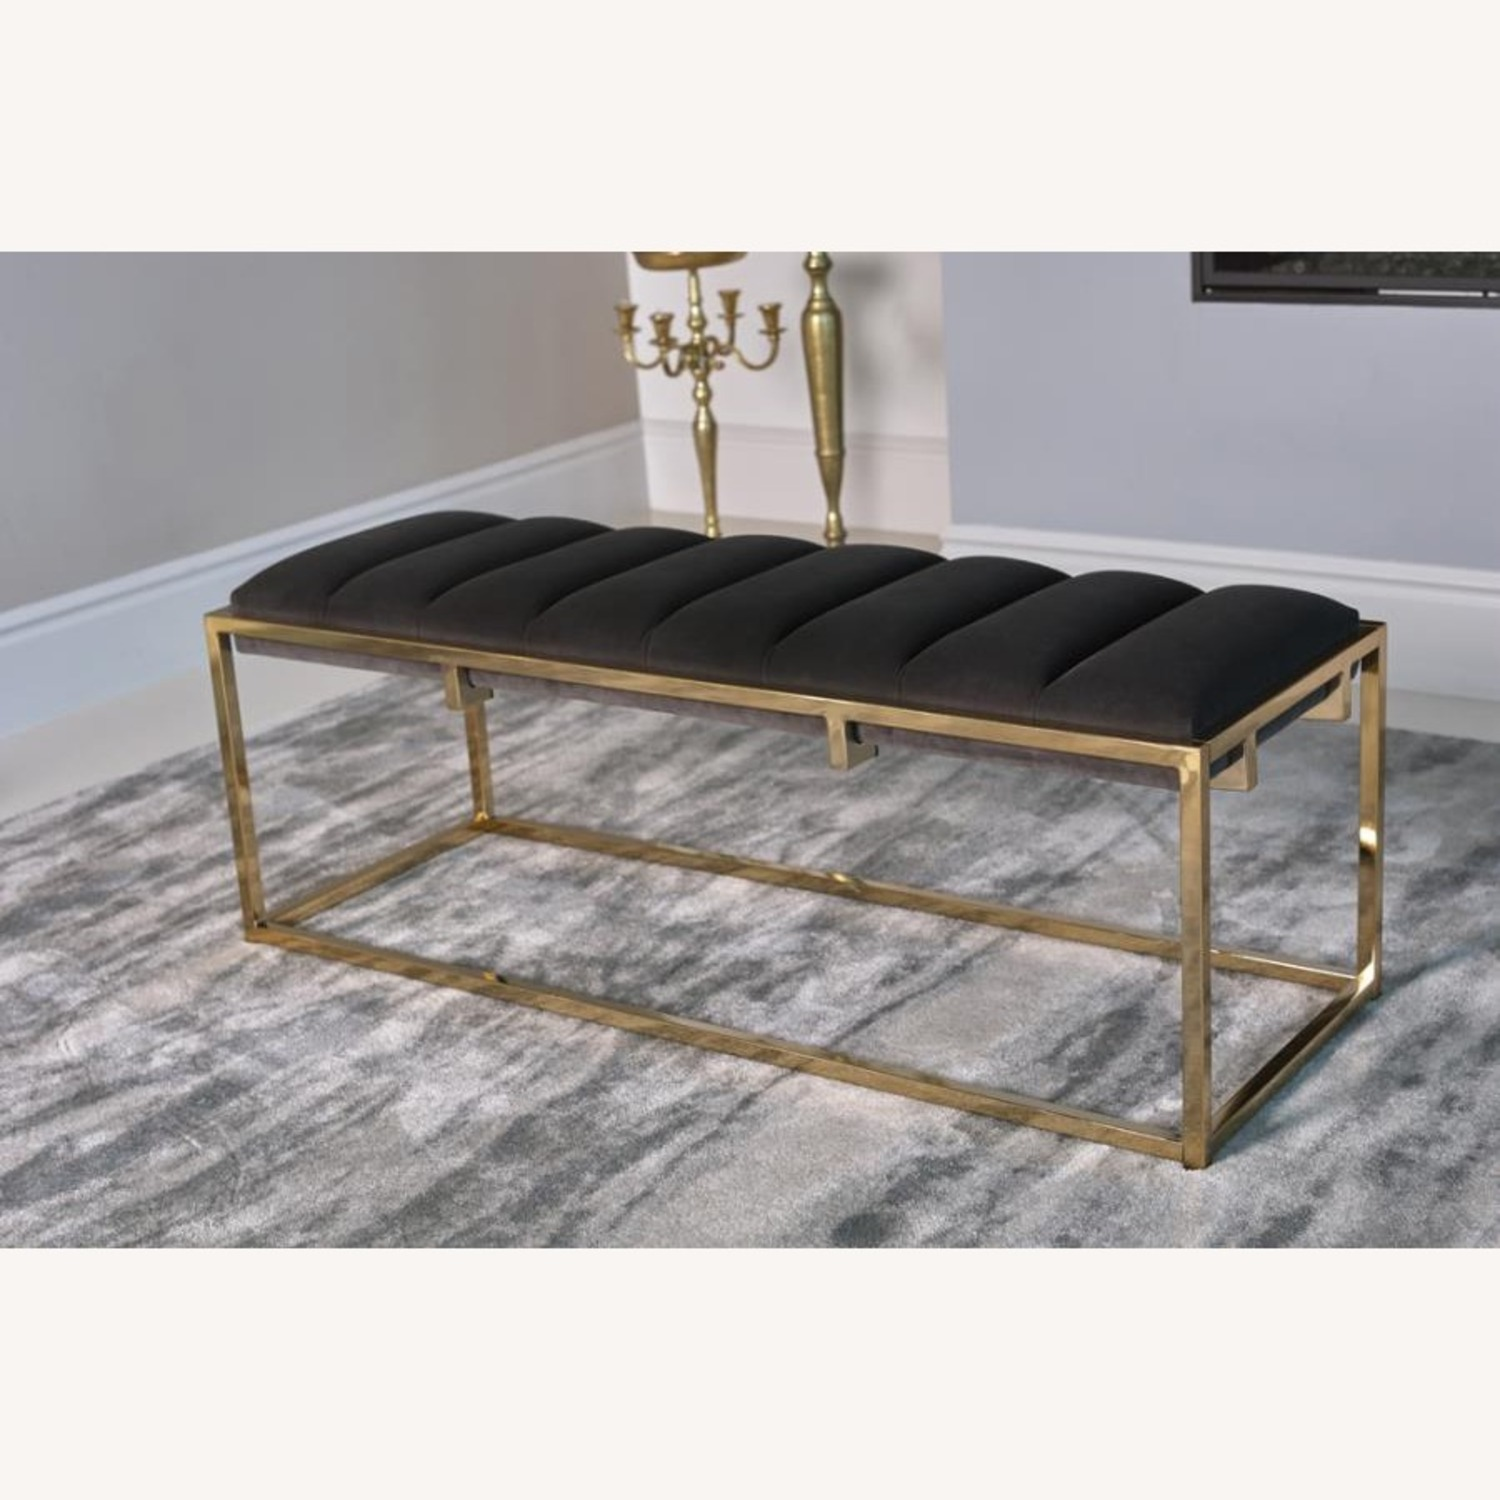 Modern Bench In Dark Grey Velvet W/ Gold Base - image-2